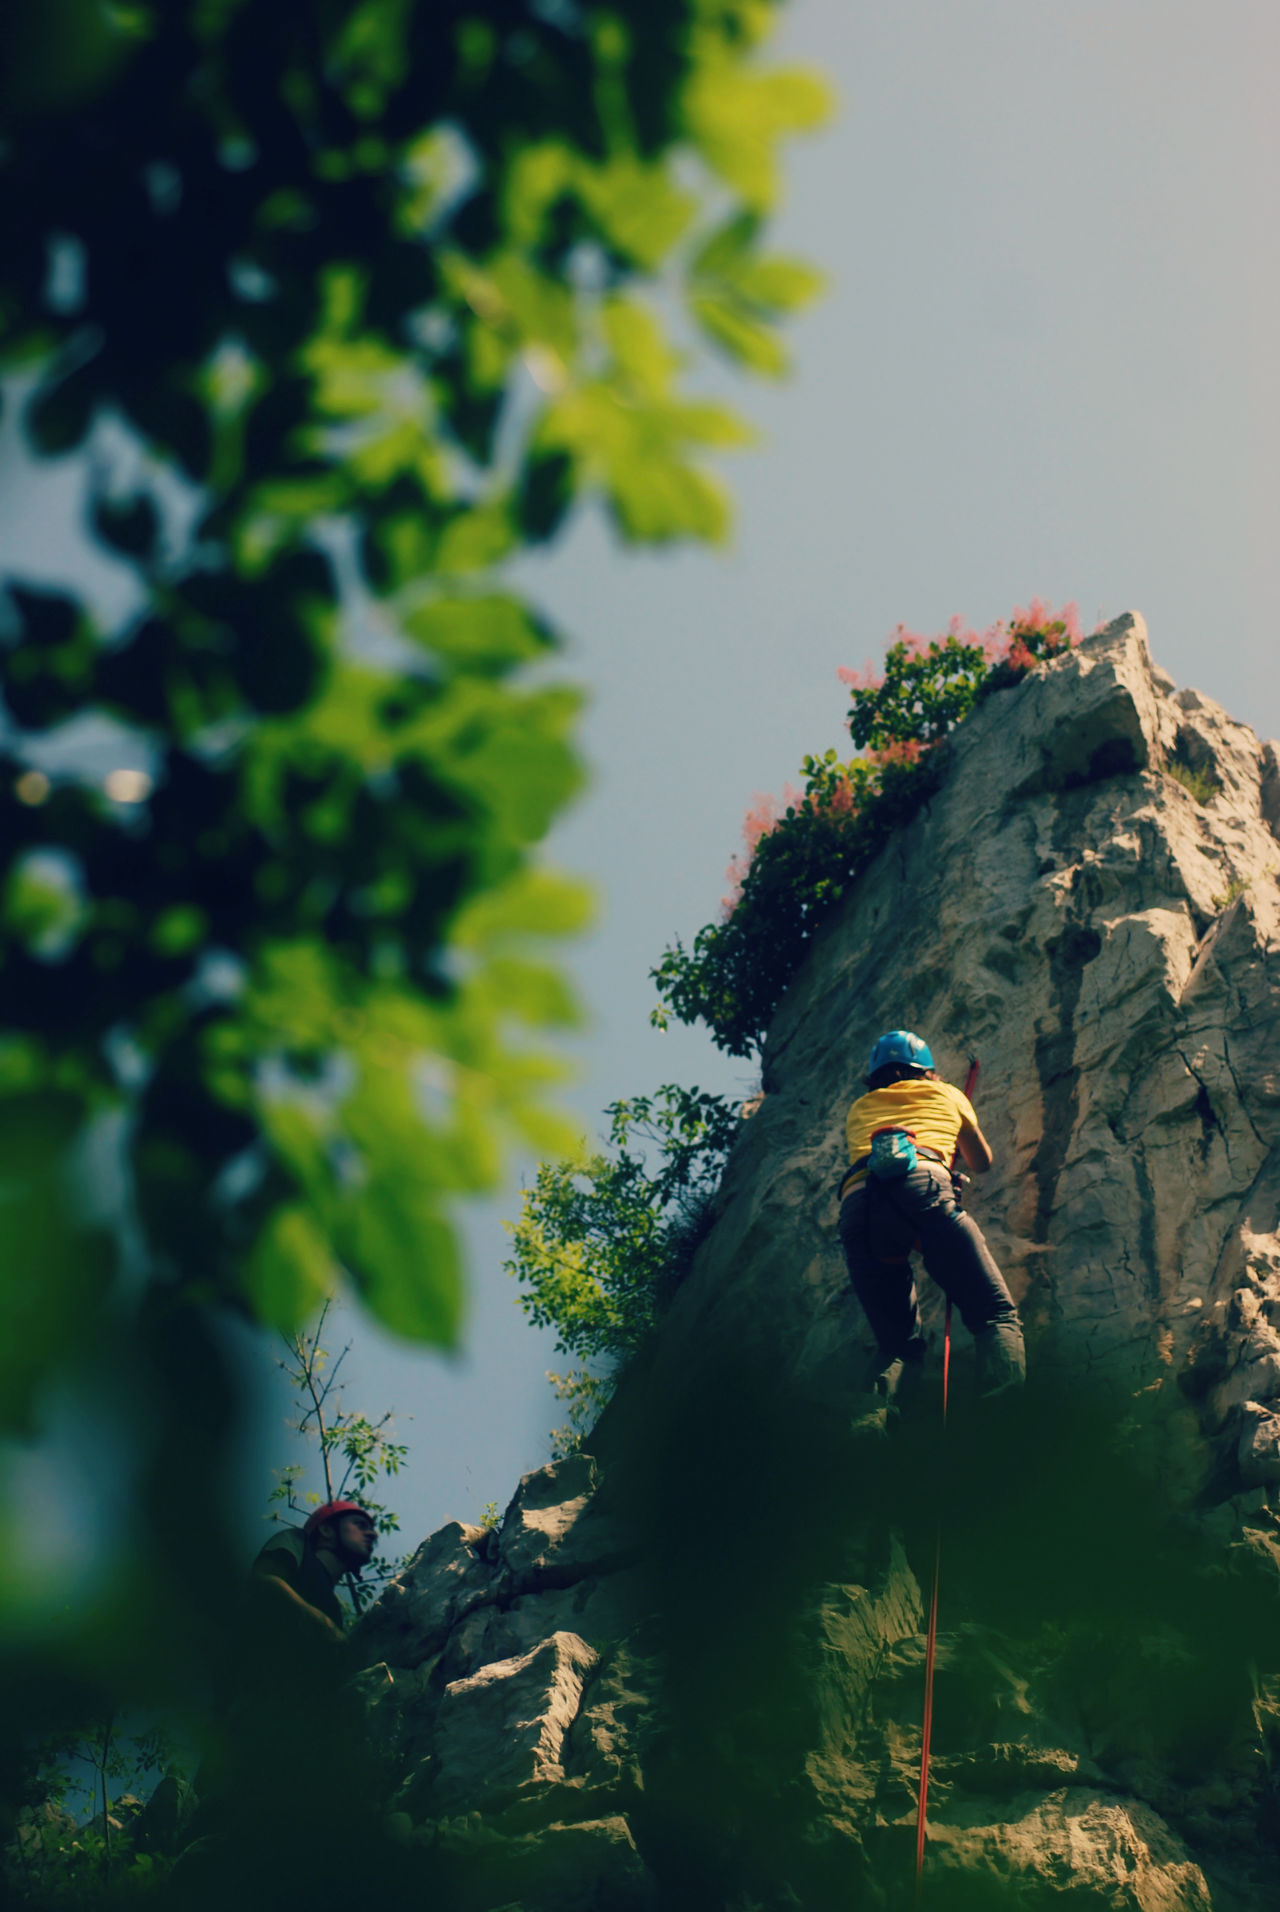 Low angle view - abseiling from a steep rock Abseil Abseiling Activity Adventure Altitude Cliff Descending Extreme Sports Helmet Hills Learning Lifestyle Low Angle View Mountaineering Nature Outdoors Rappel Rappelling Rockclimber RockClimbing Rope Sky Sport Steep Vertical